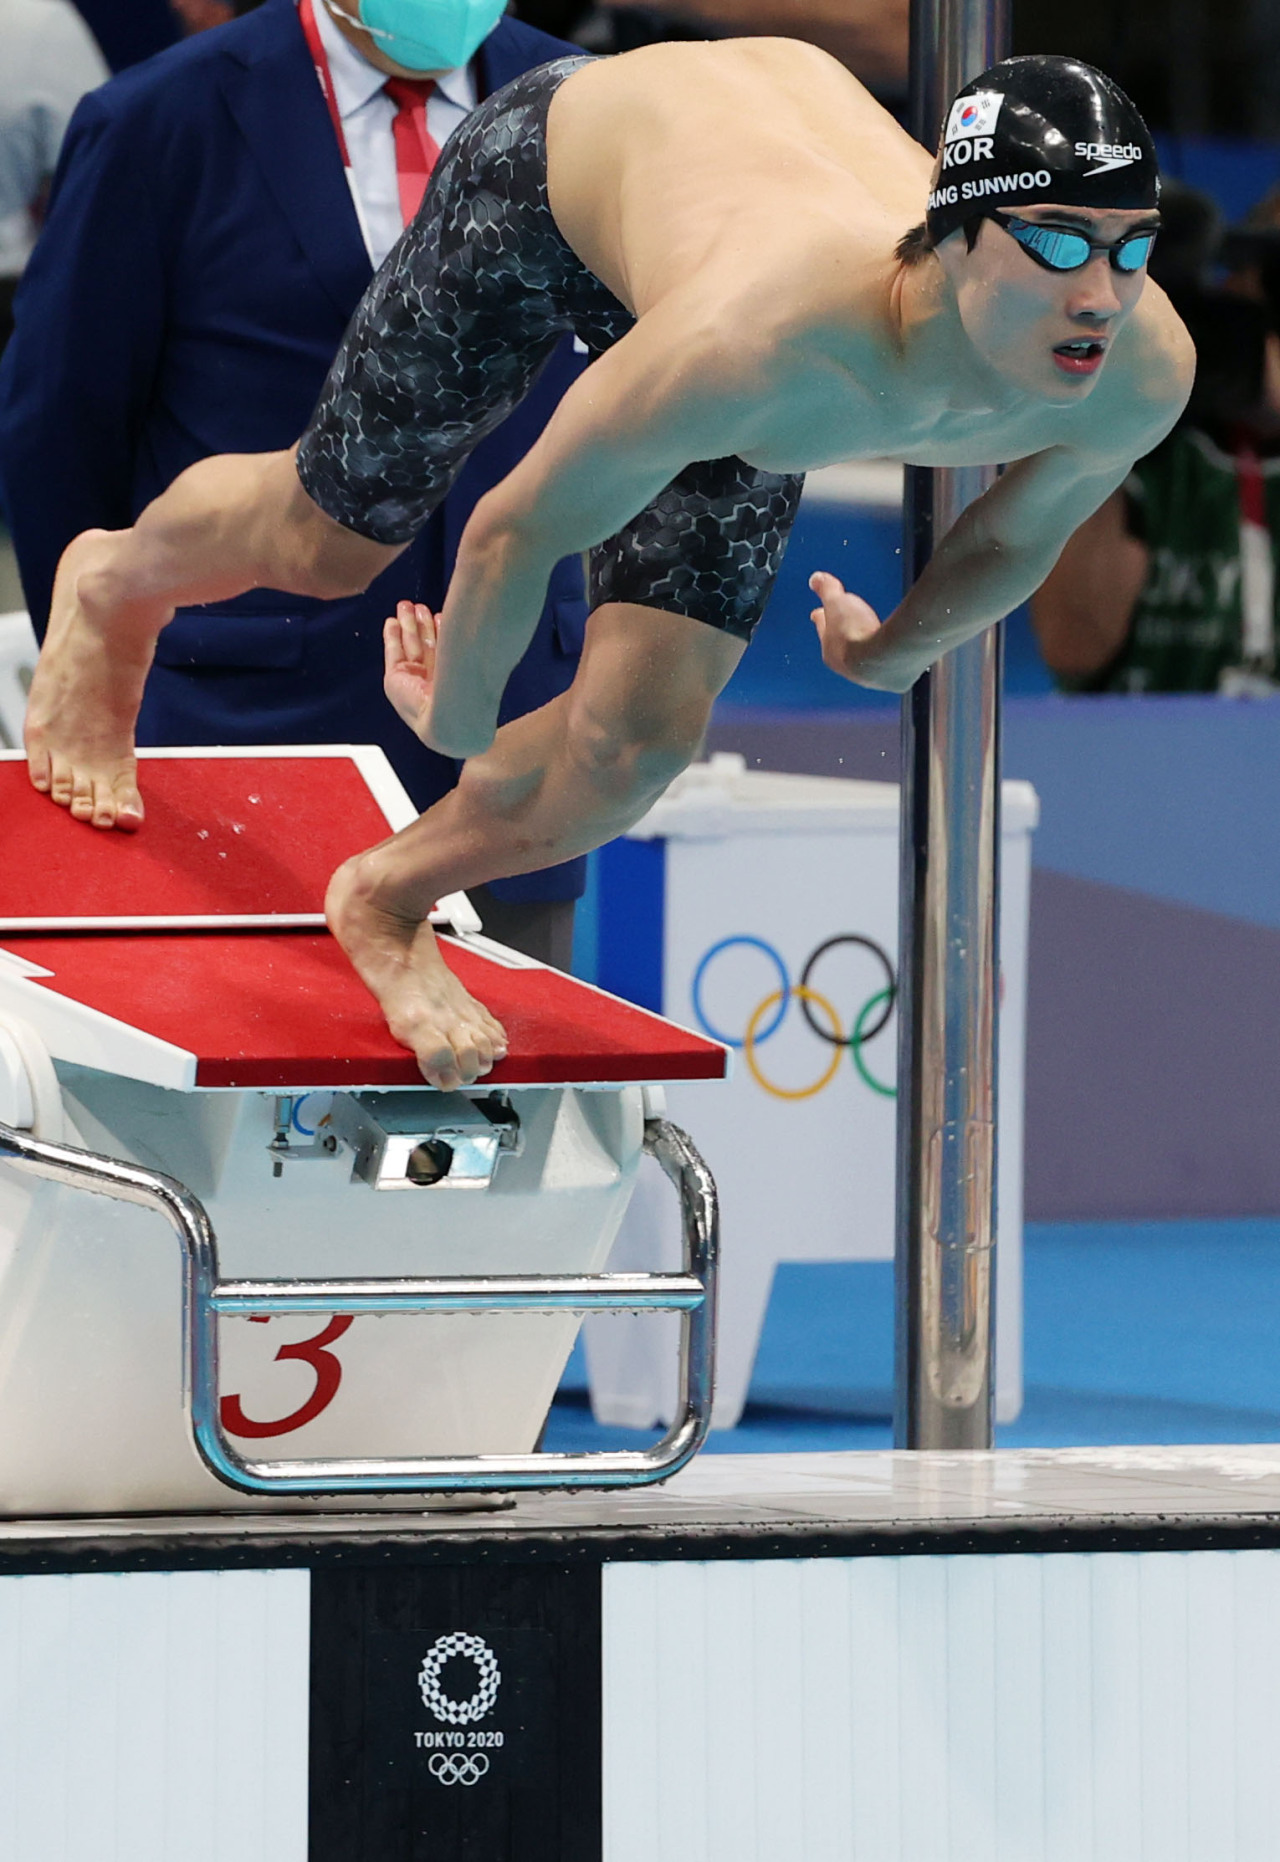 Hwang Sun-woo of South Korea jumps into the pool at Tokyo Aquatics Centre for the men's 100m freestyle semifinals at the Tokyo Olympics on Wednesday. (Yonhap)